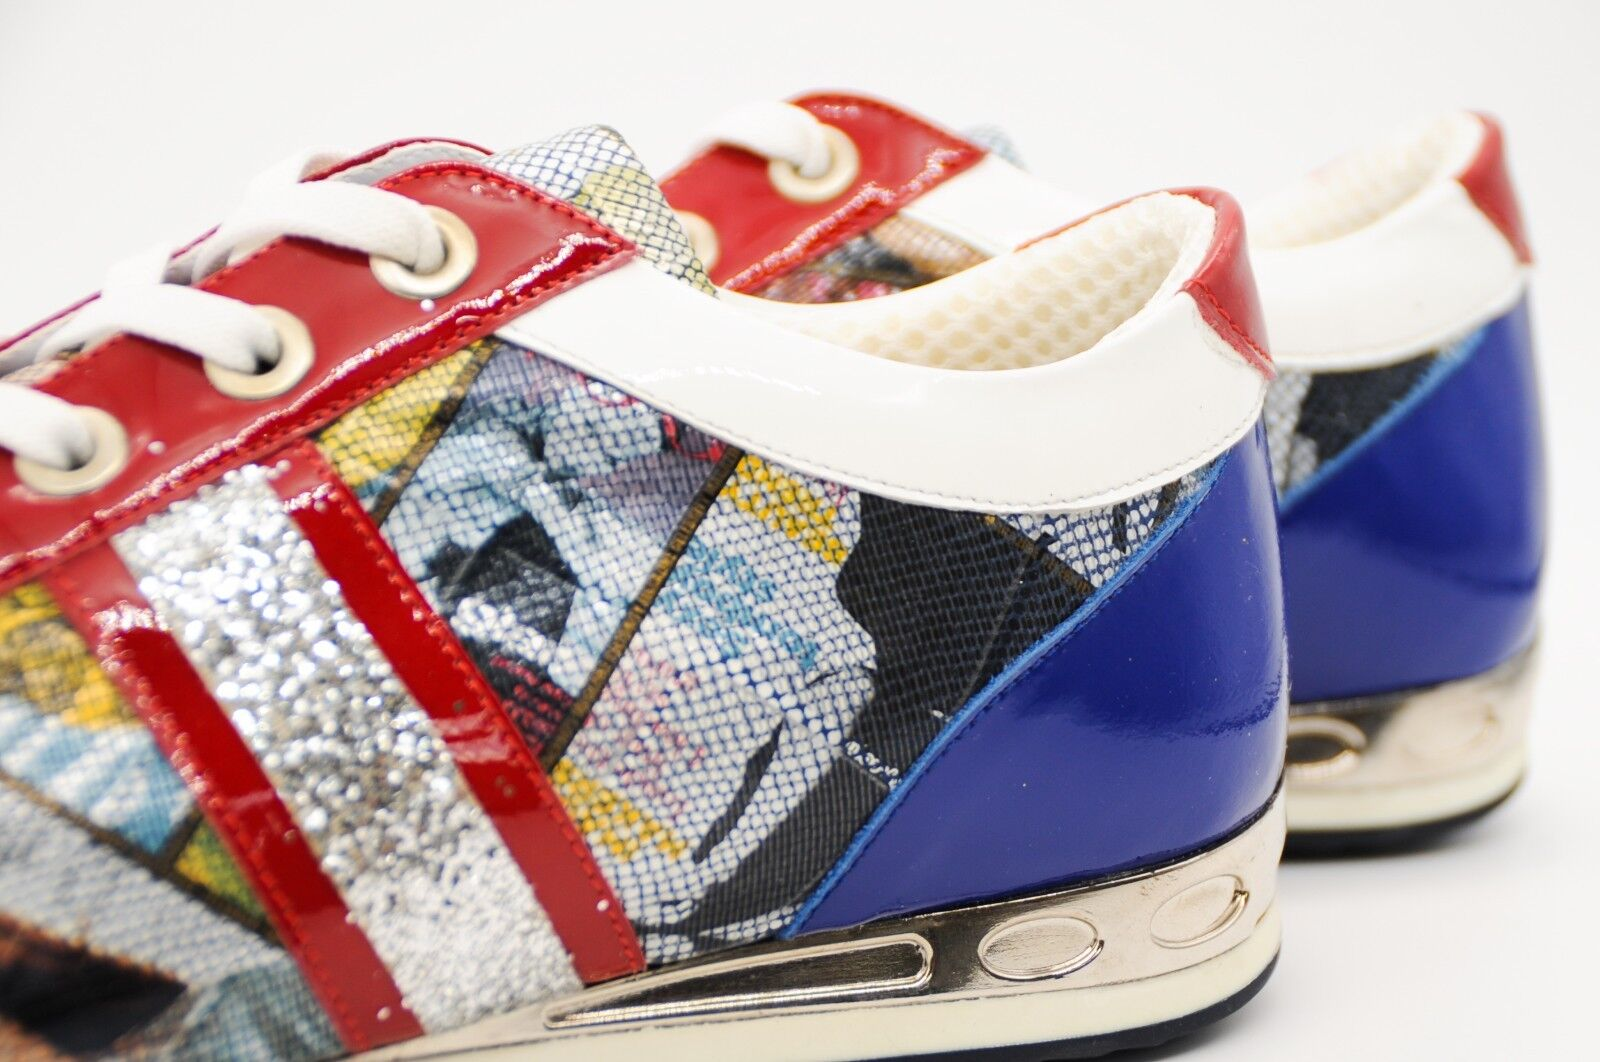 LADIES' PATENT LEATHER LEATHER LEATHER TRAINERS PUMPS WITH A MULTICOLGoldt MOTIF VOGUE PRINT 2baf96